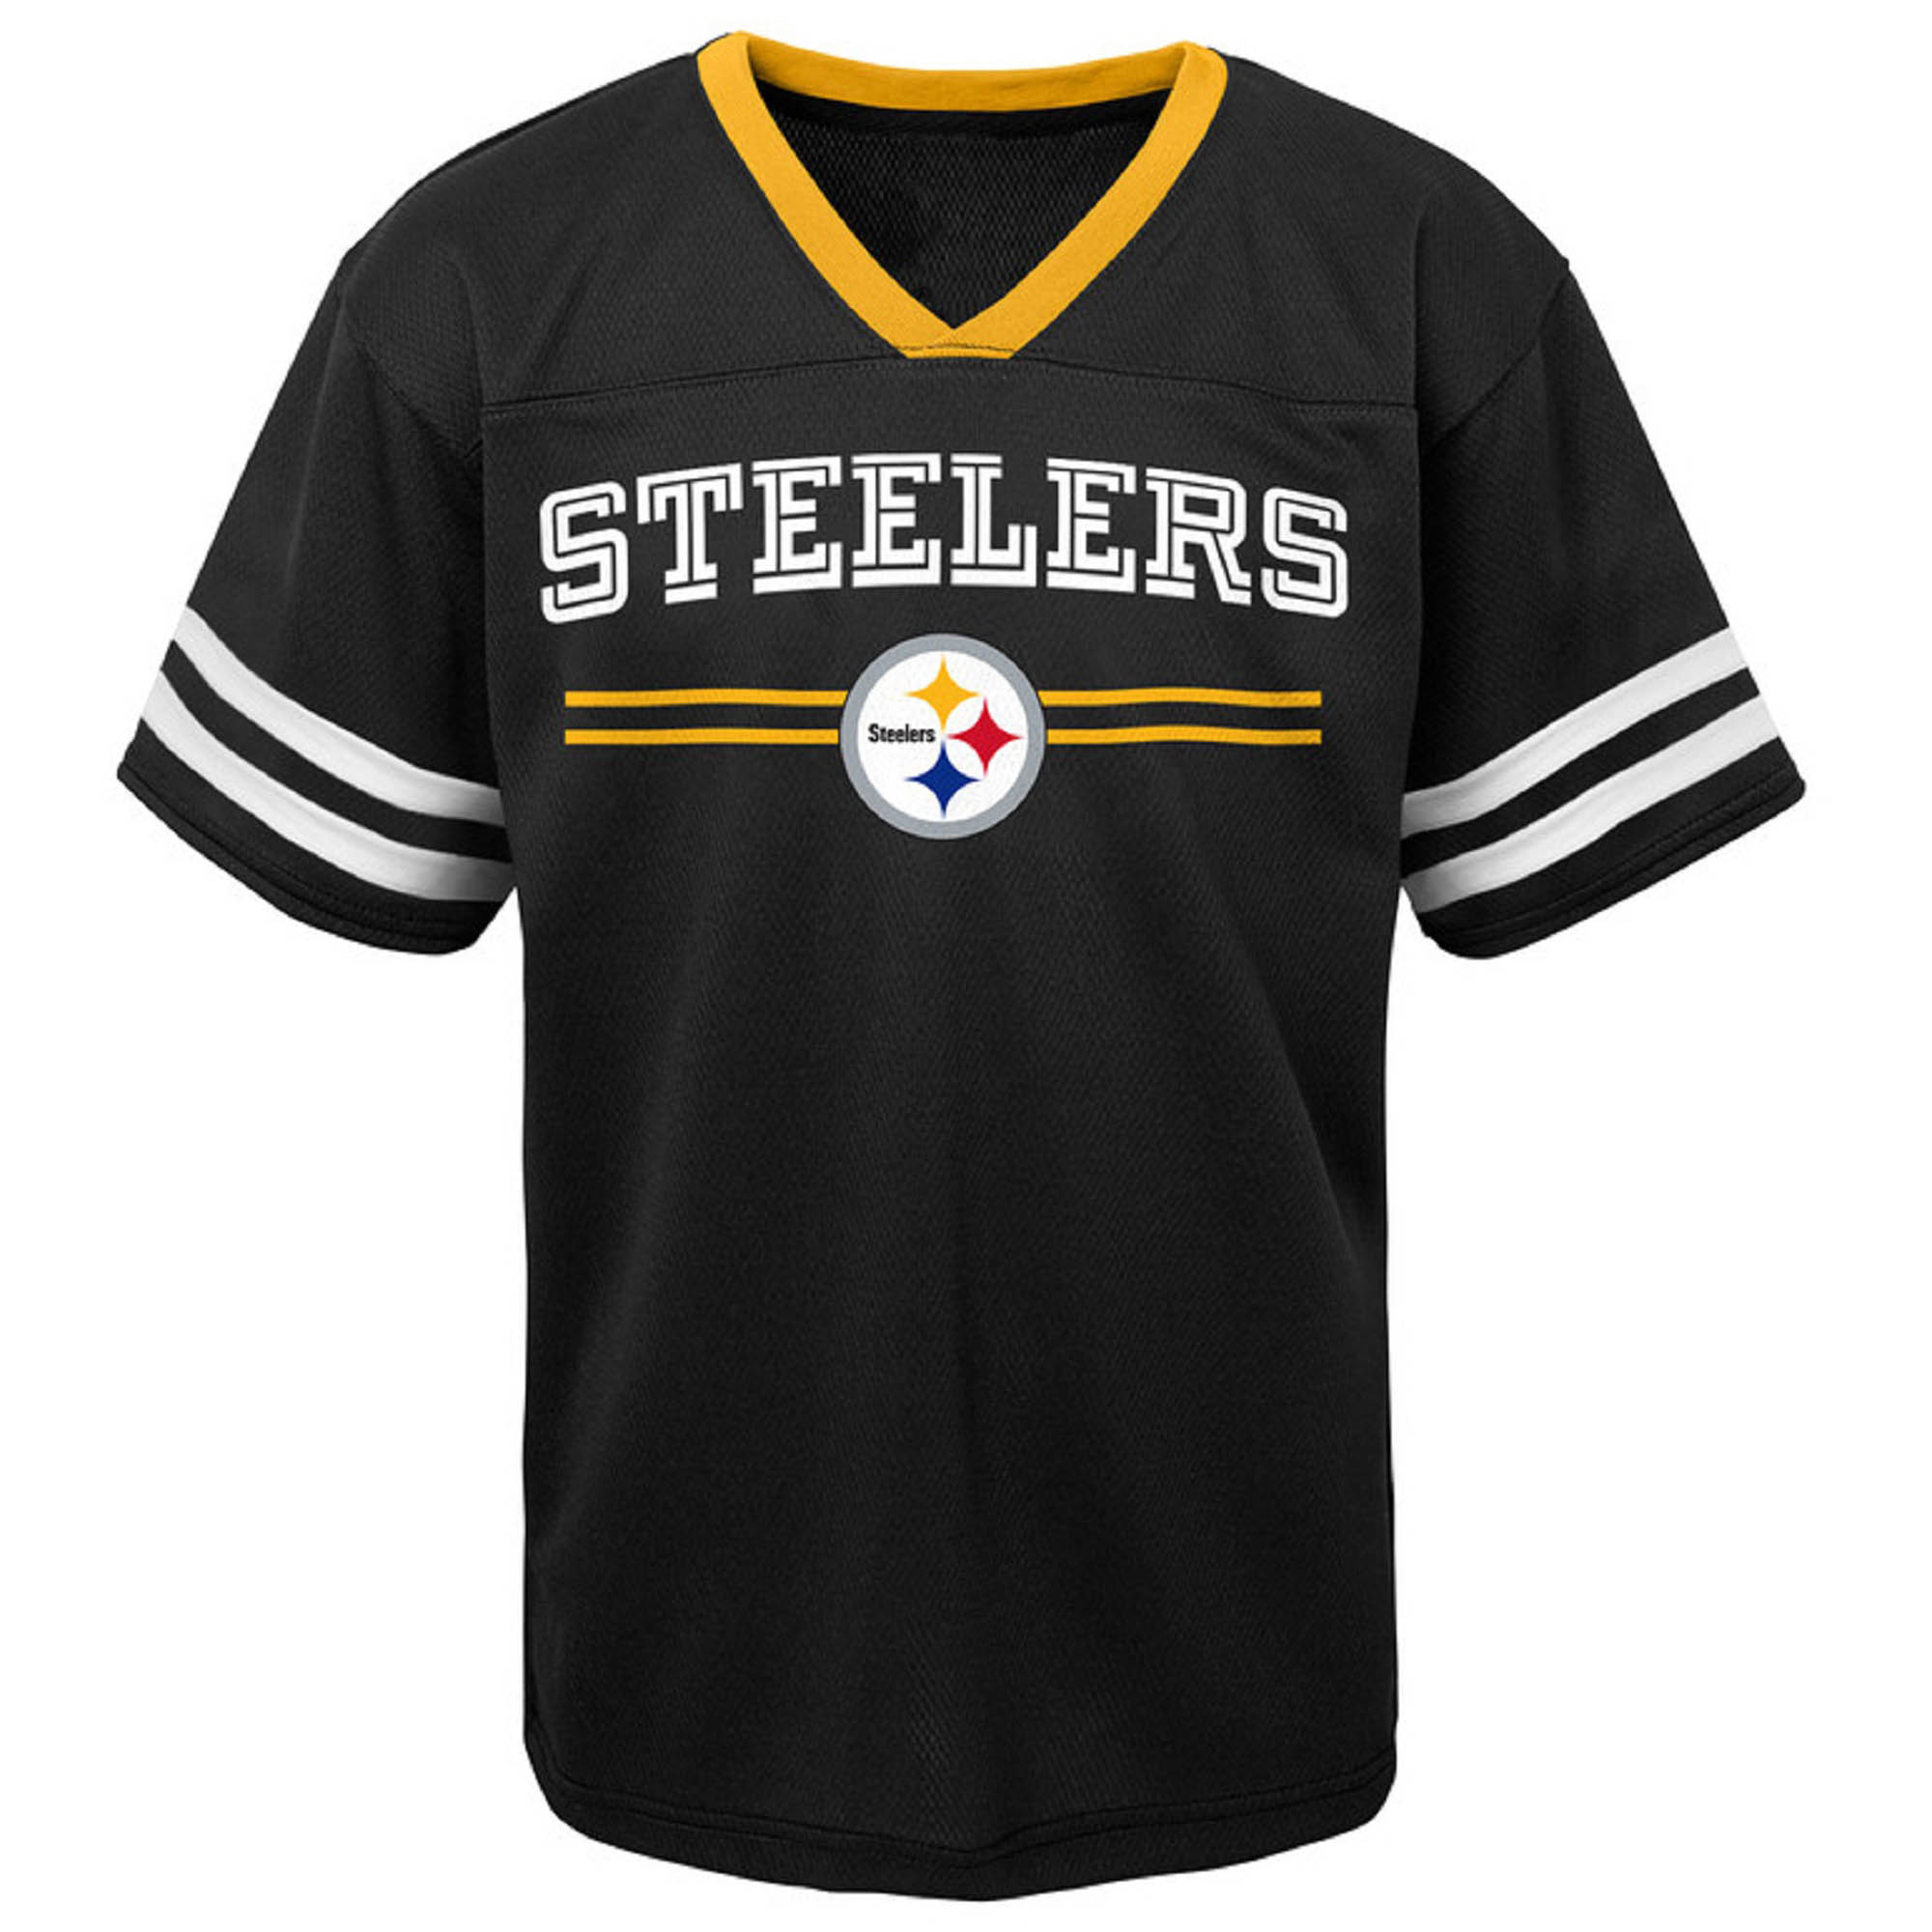 Toddler Black Pittsburgh Steelers Mesh Jersey V-Neck T-Shirt